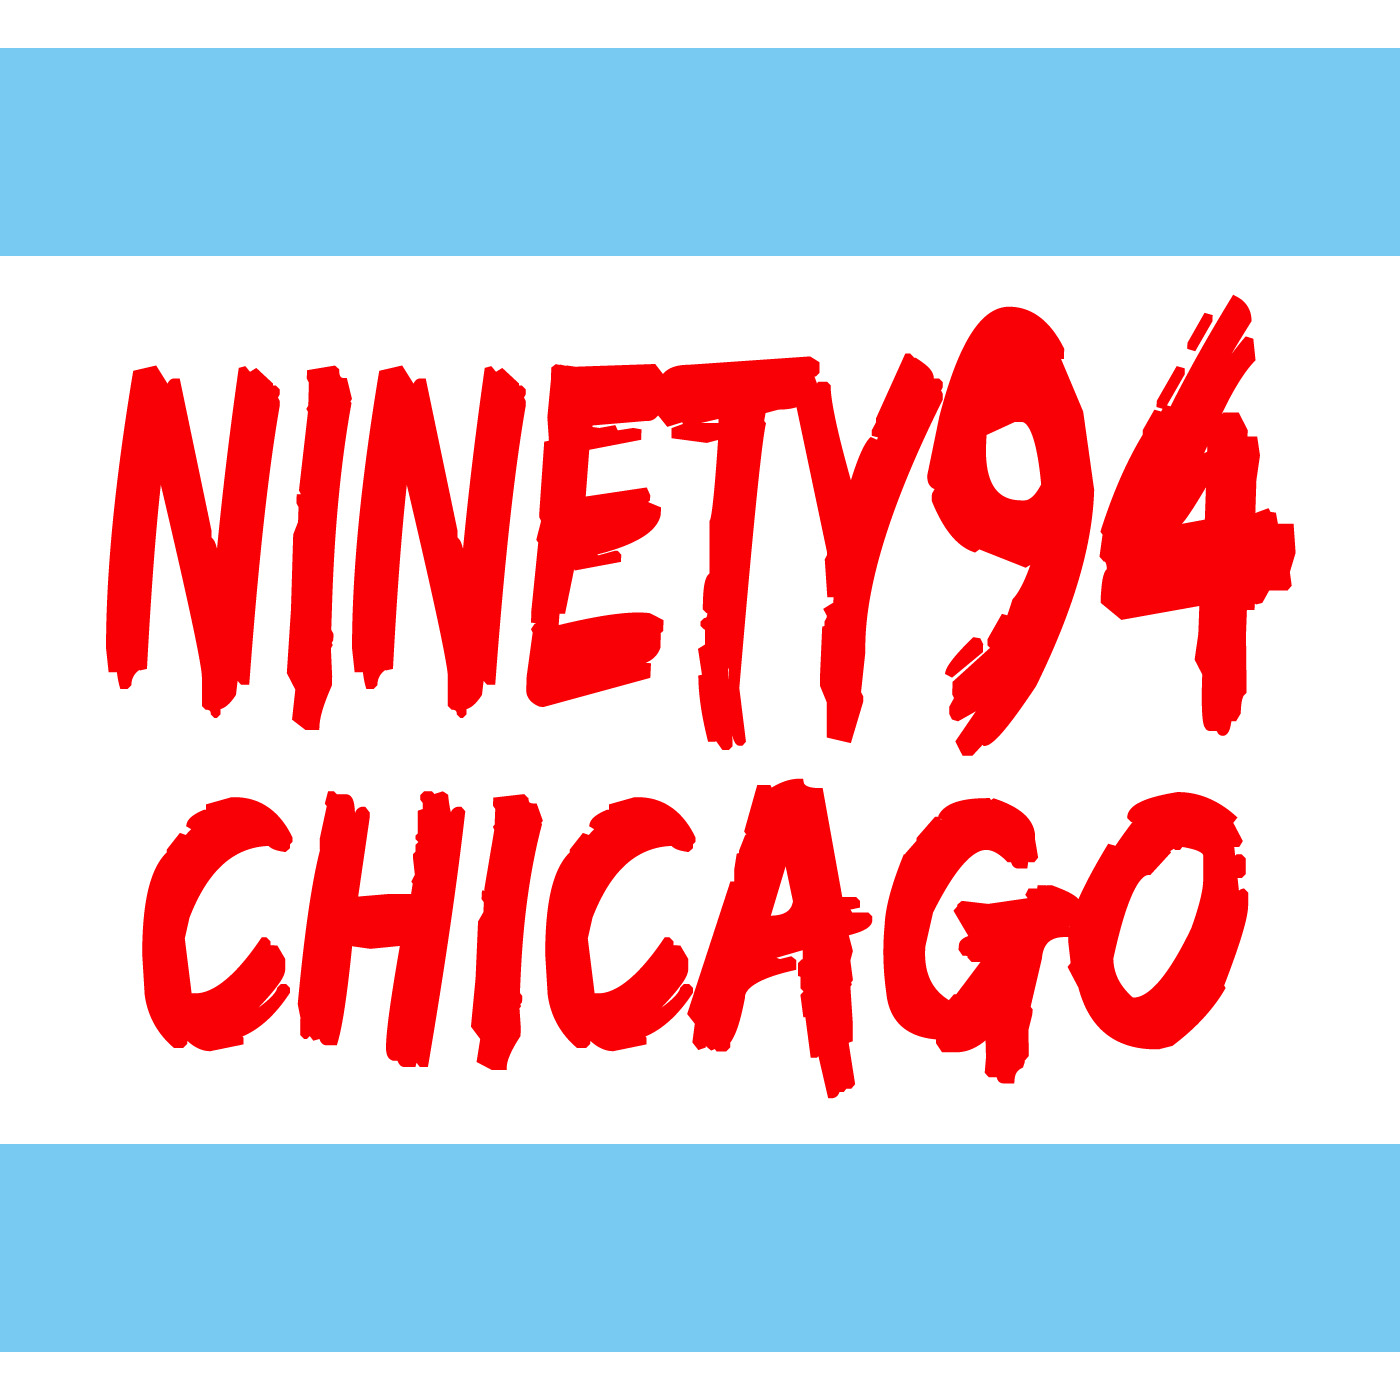 Ninety94 Chicago